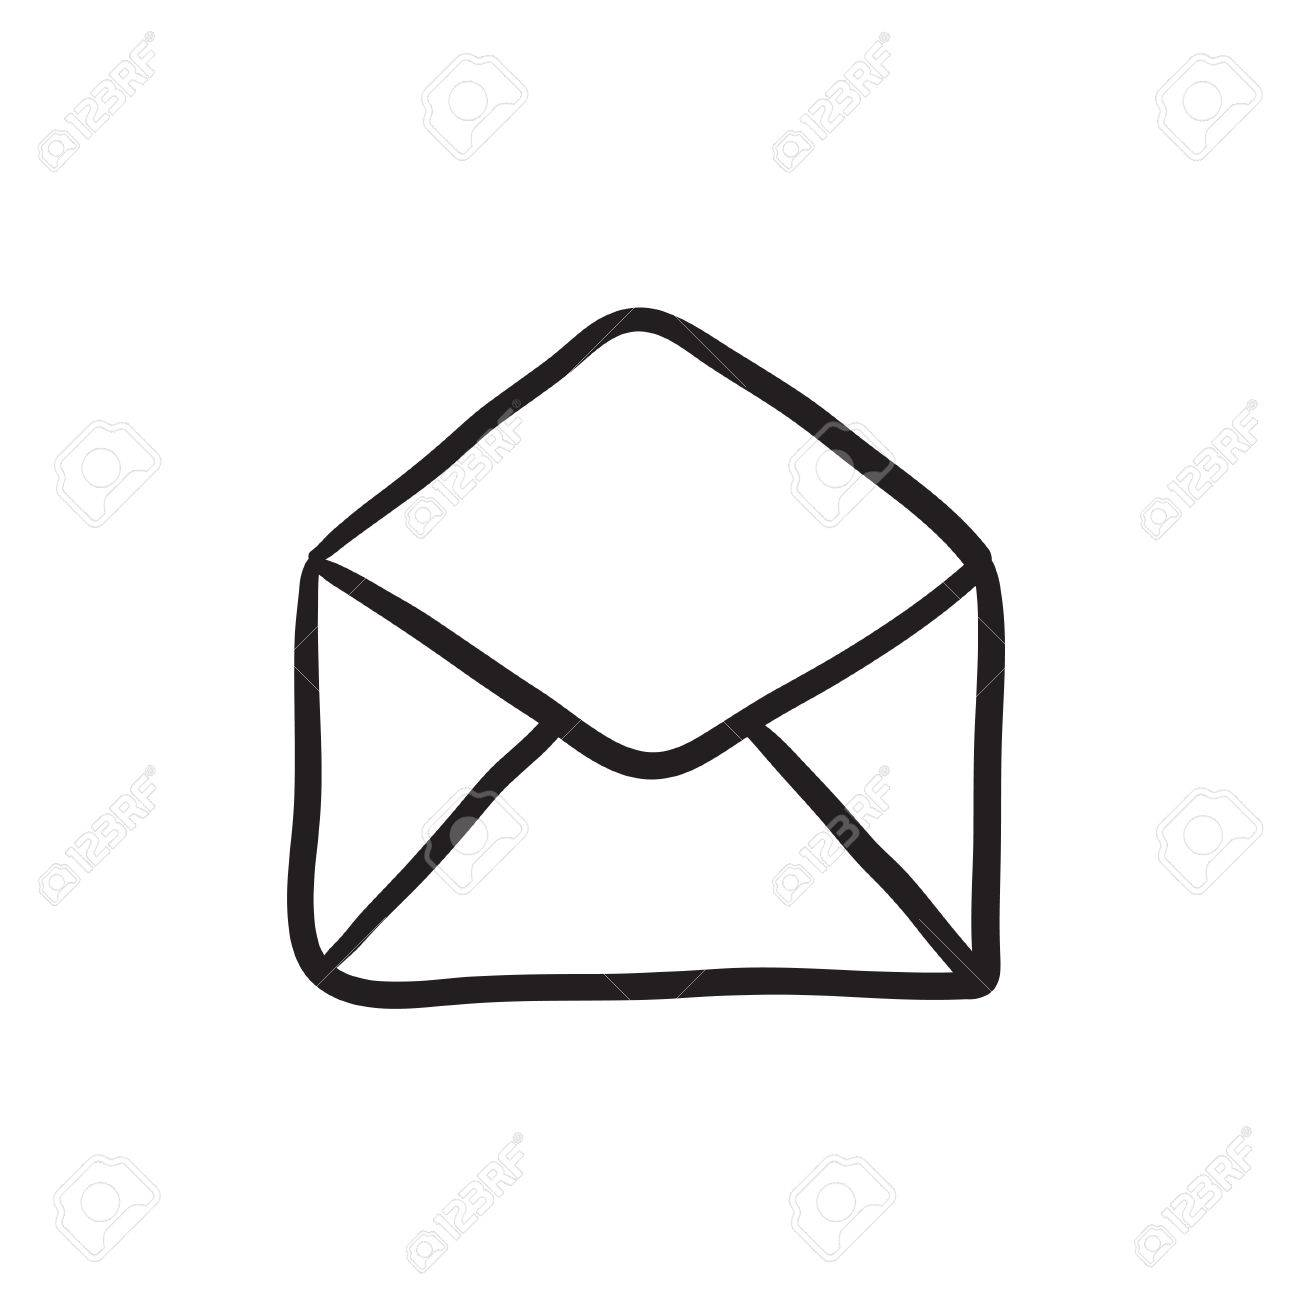 envelope vector sketch icon isolated on background hand drawn rh 123rf com envelope vector free download envelope vector download